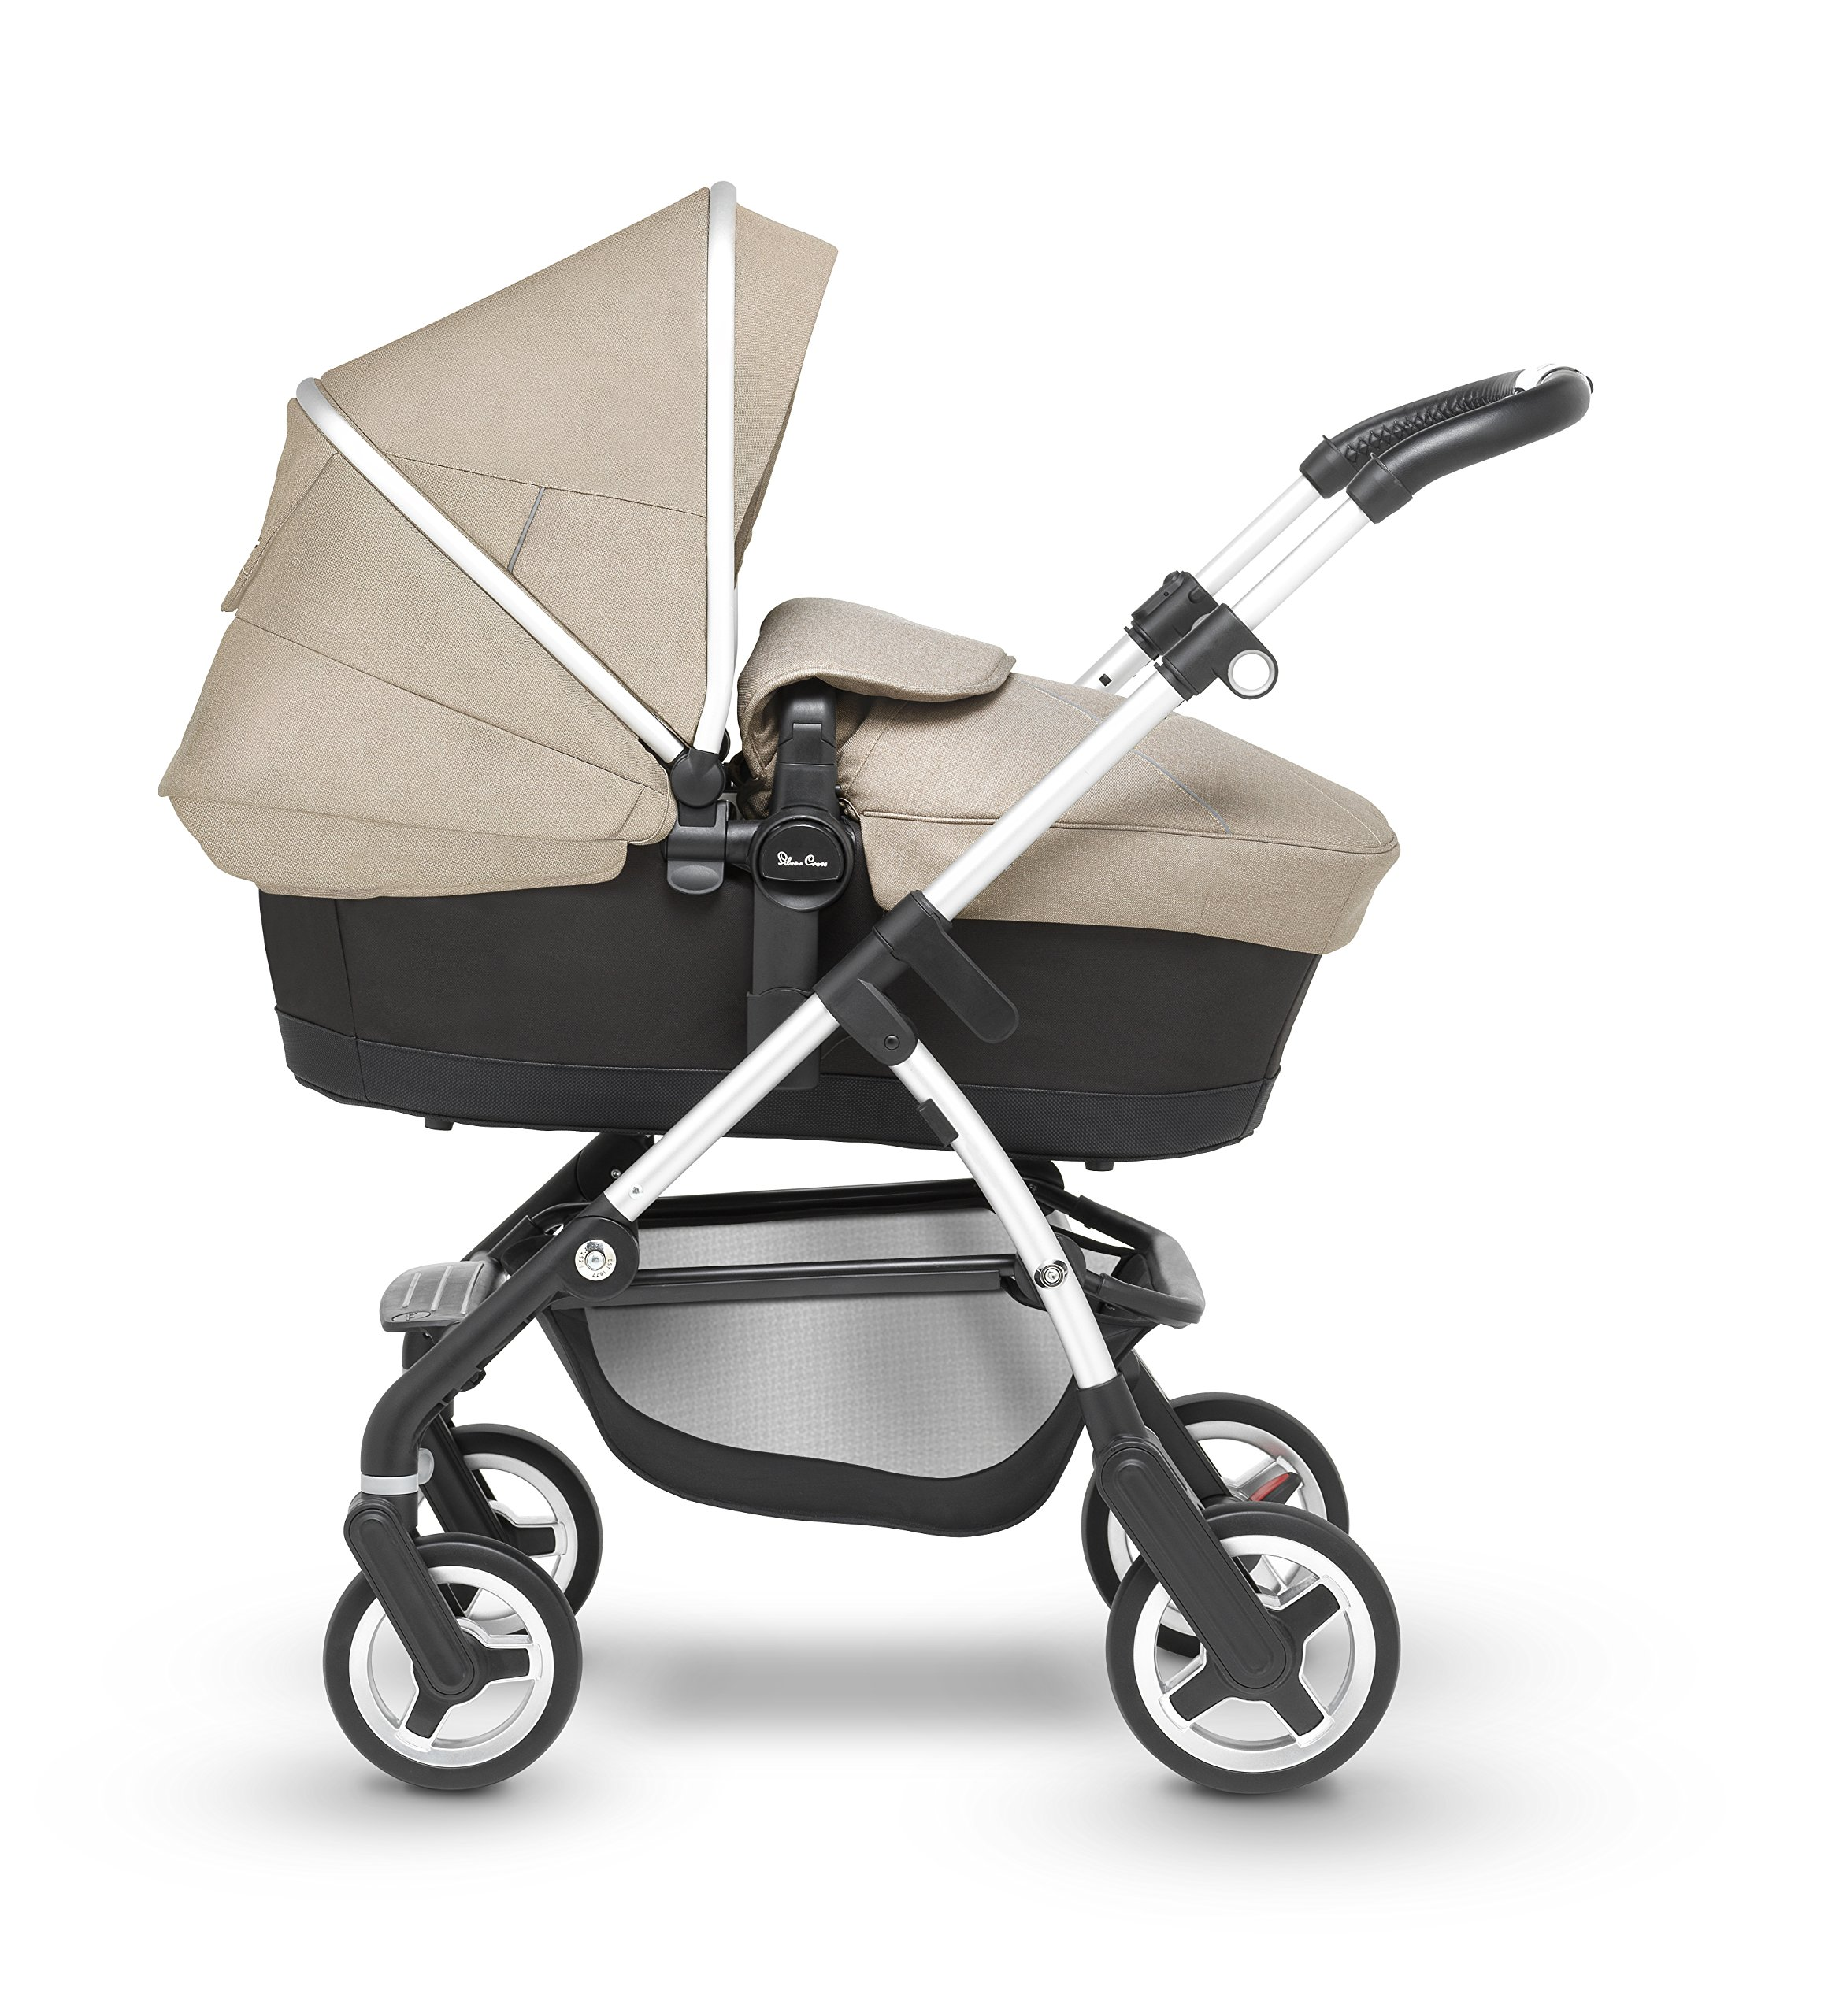 Silver Cross Wayfarer Pushchair and Carrycot, Linen Silver Cross A complete Pram system that includes everything you need from birth to toddler Includes a lie-flat Carrycot for your new born that is suitable for overnight sleeping Includes a fully, reversible Pushchair seat unit, suitable up to 25kg 2